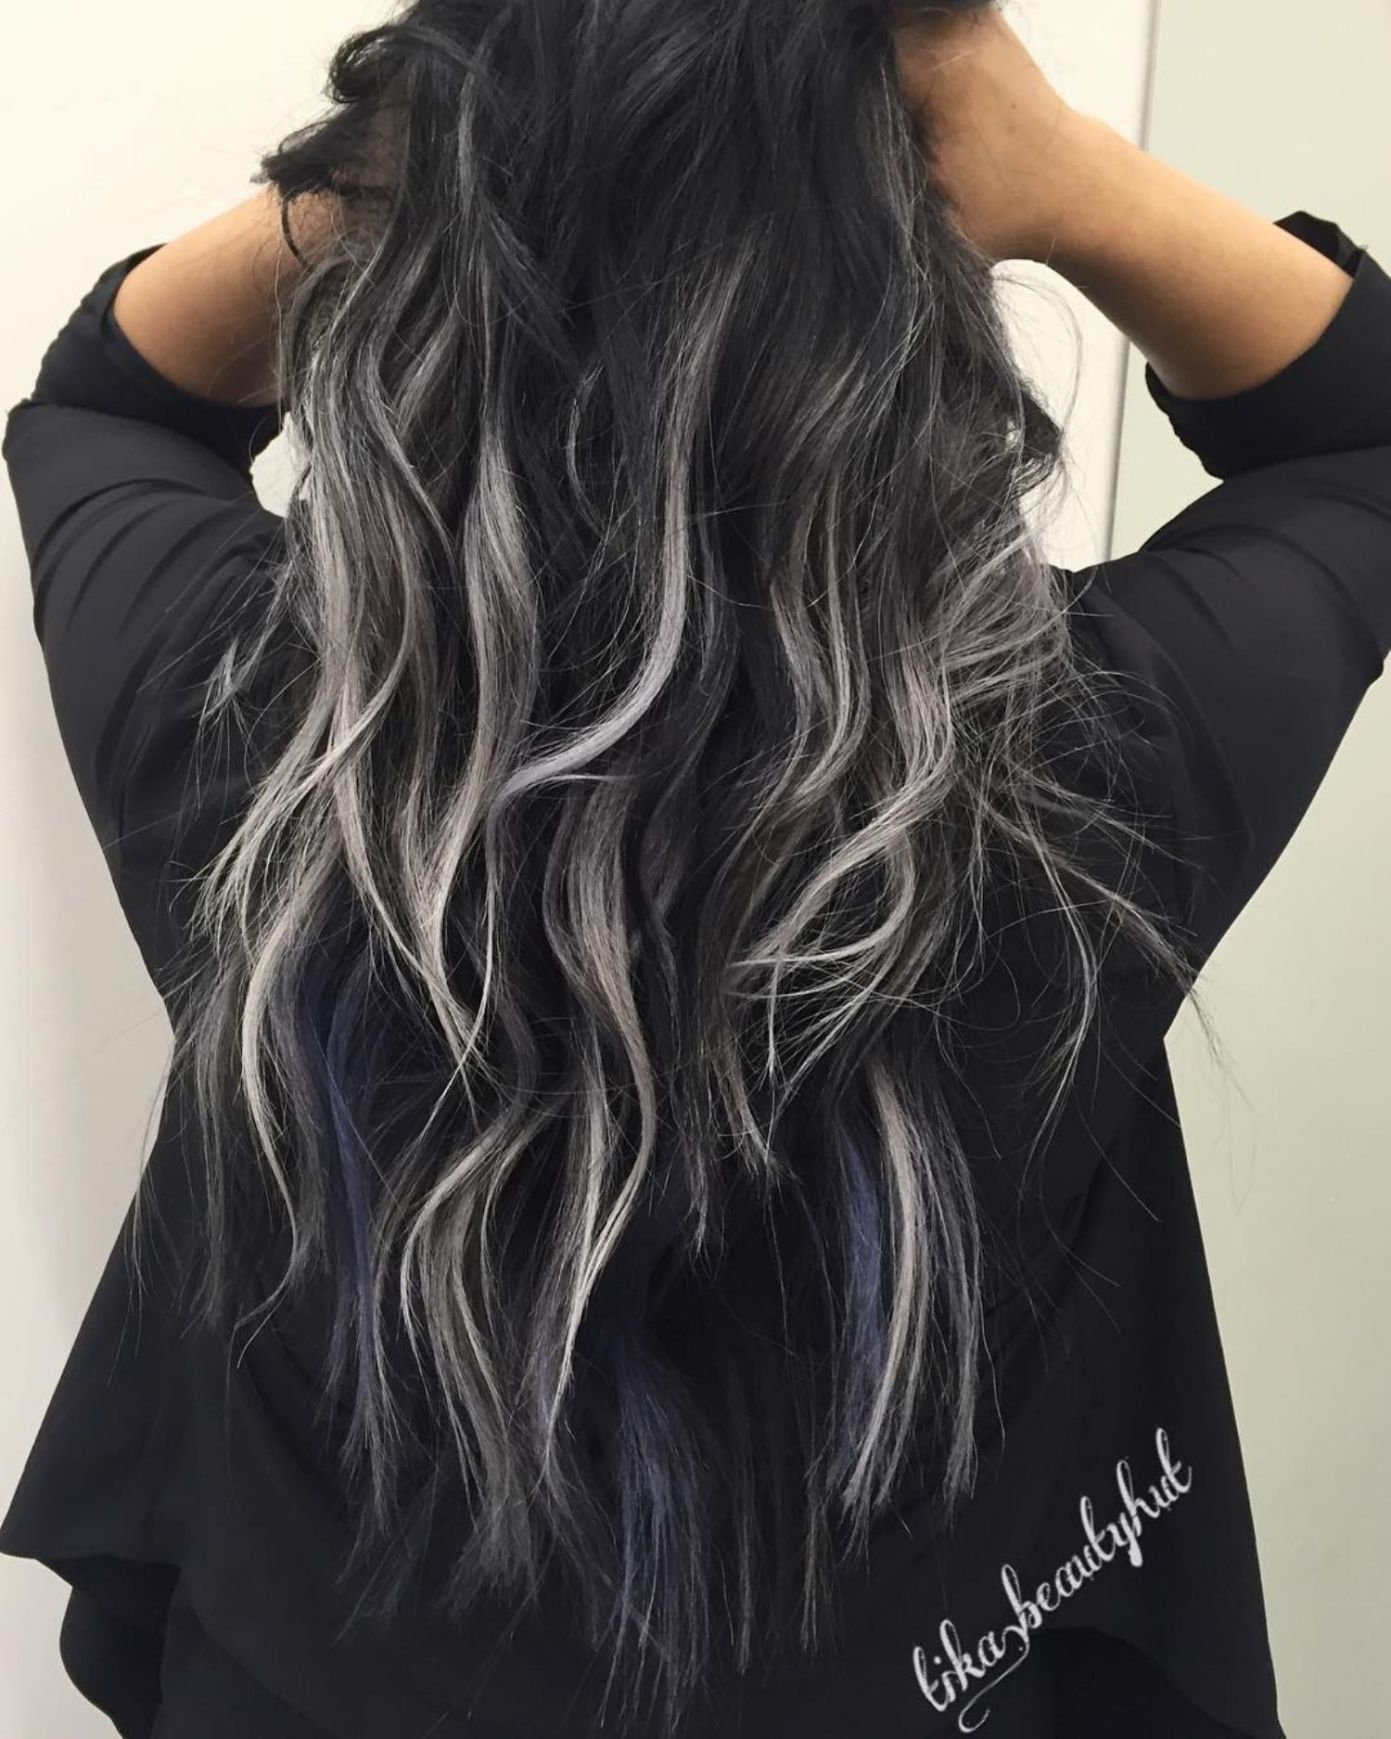 60 Shades Of Grey Silver And White Highlights For Eternal Youth Grey Ombre Hair Curly Hair Styles Hair Styles